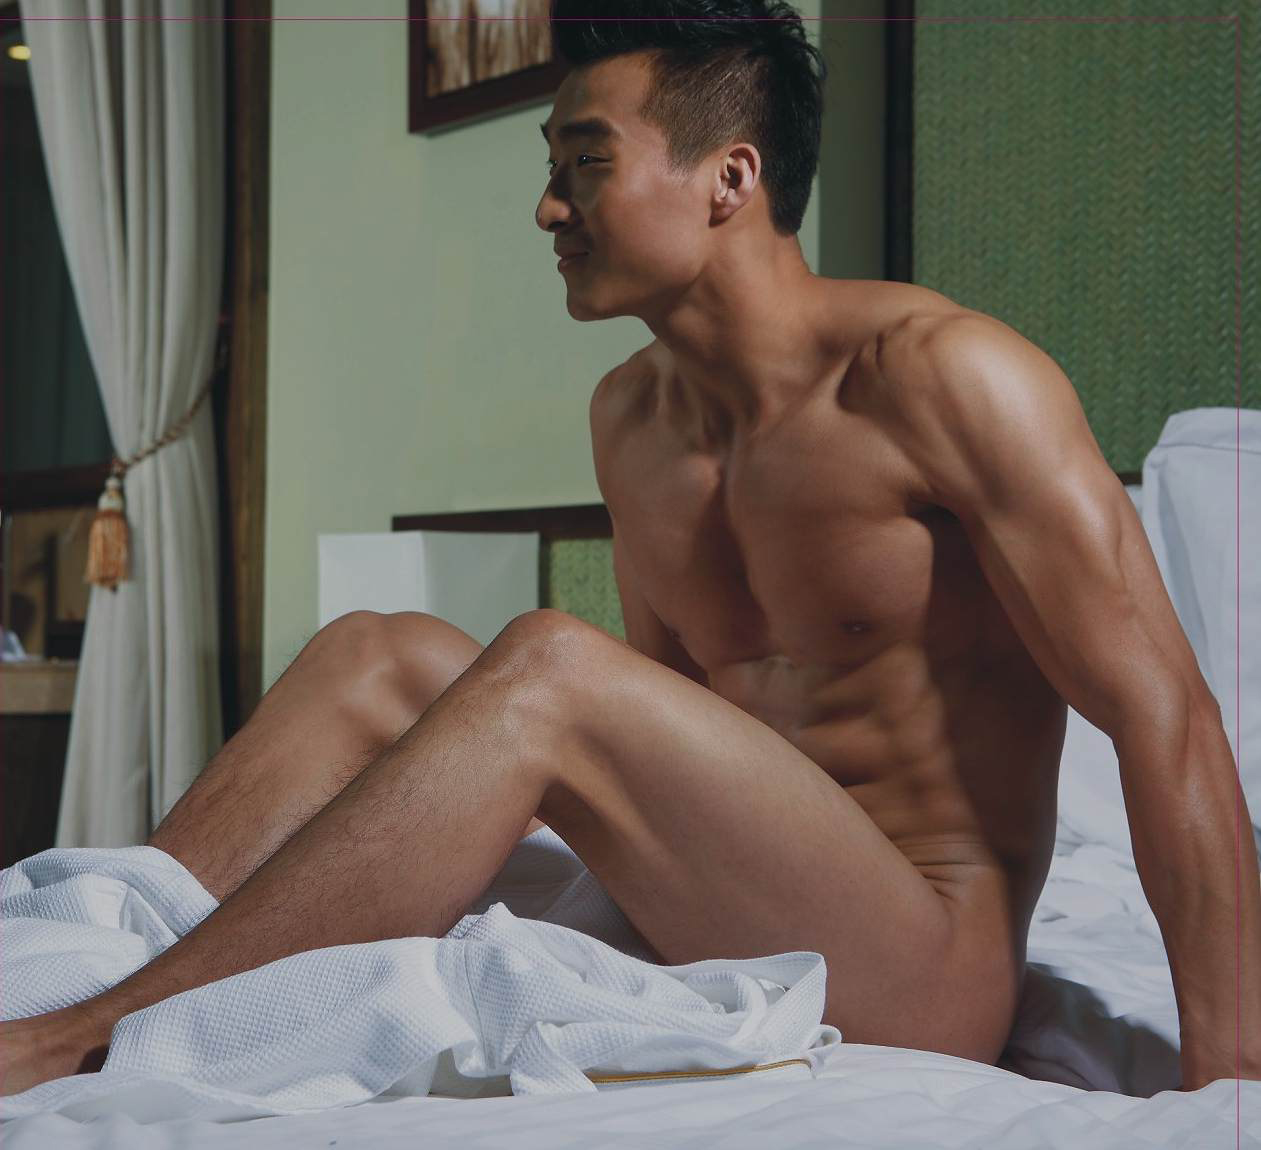 Chinese male nude pictures consider